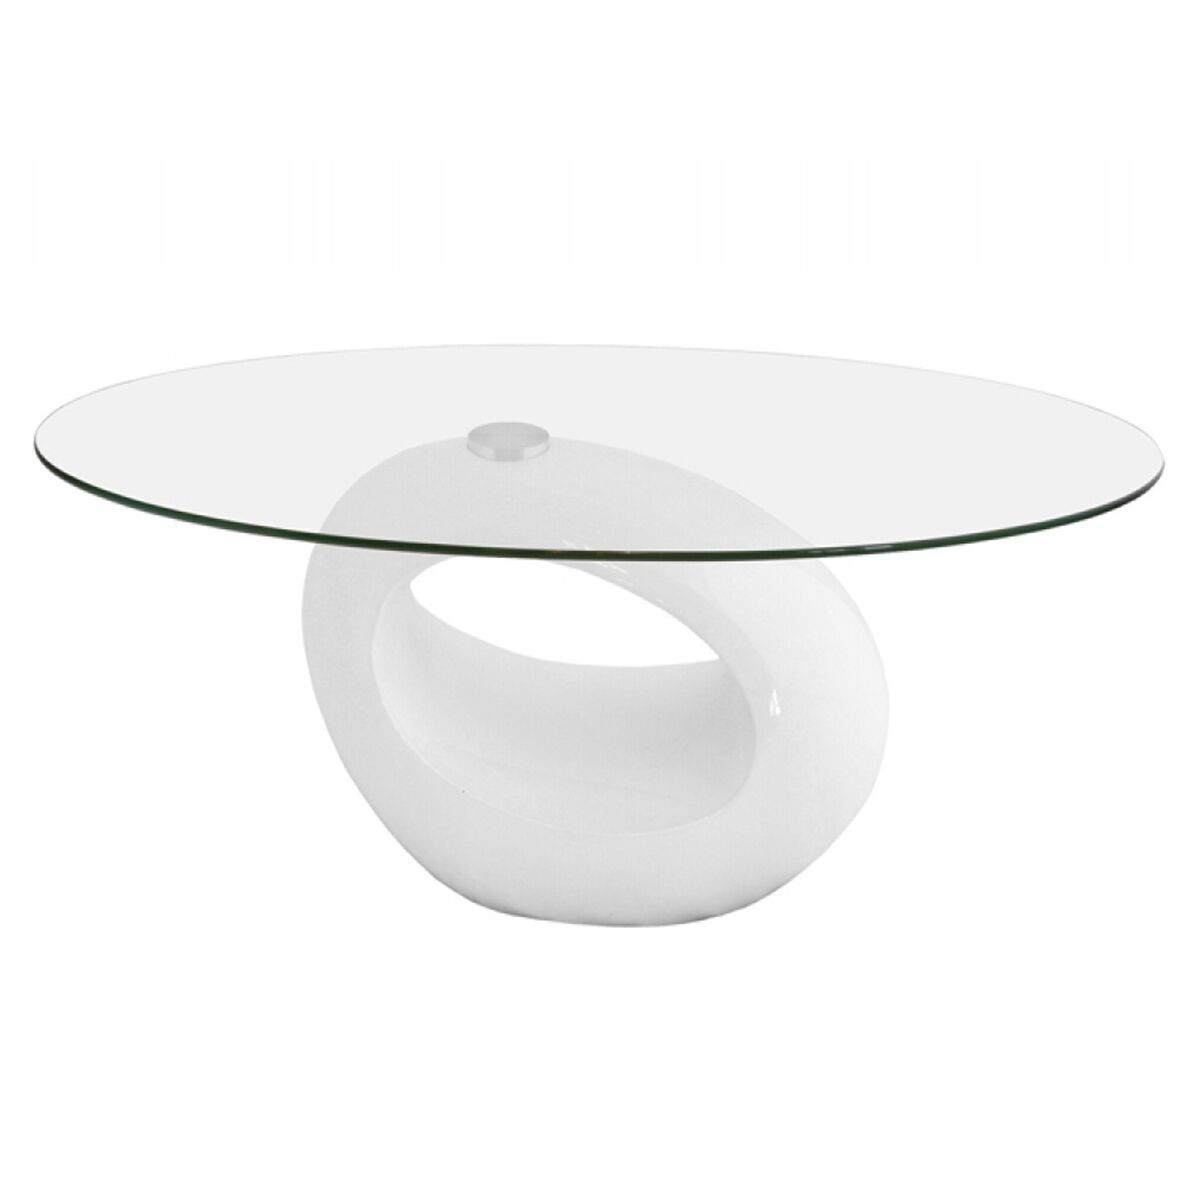 Neblus Curved White Clear Glass Coffee Table Fads [ 1200 x 1200 Pixel ]